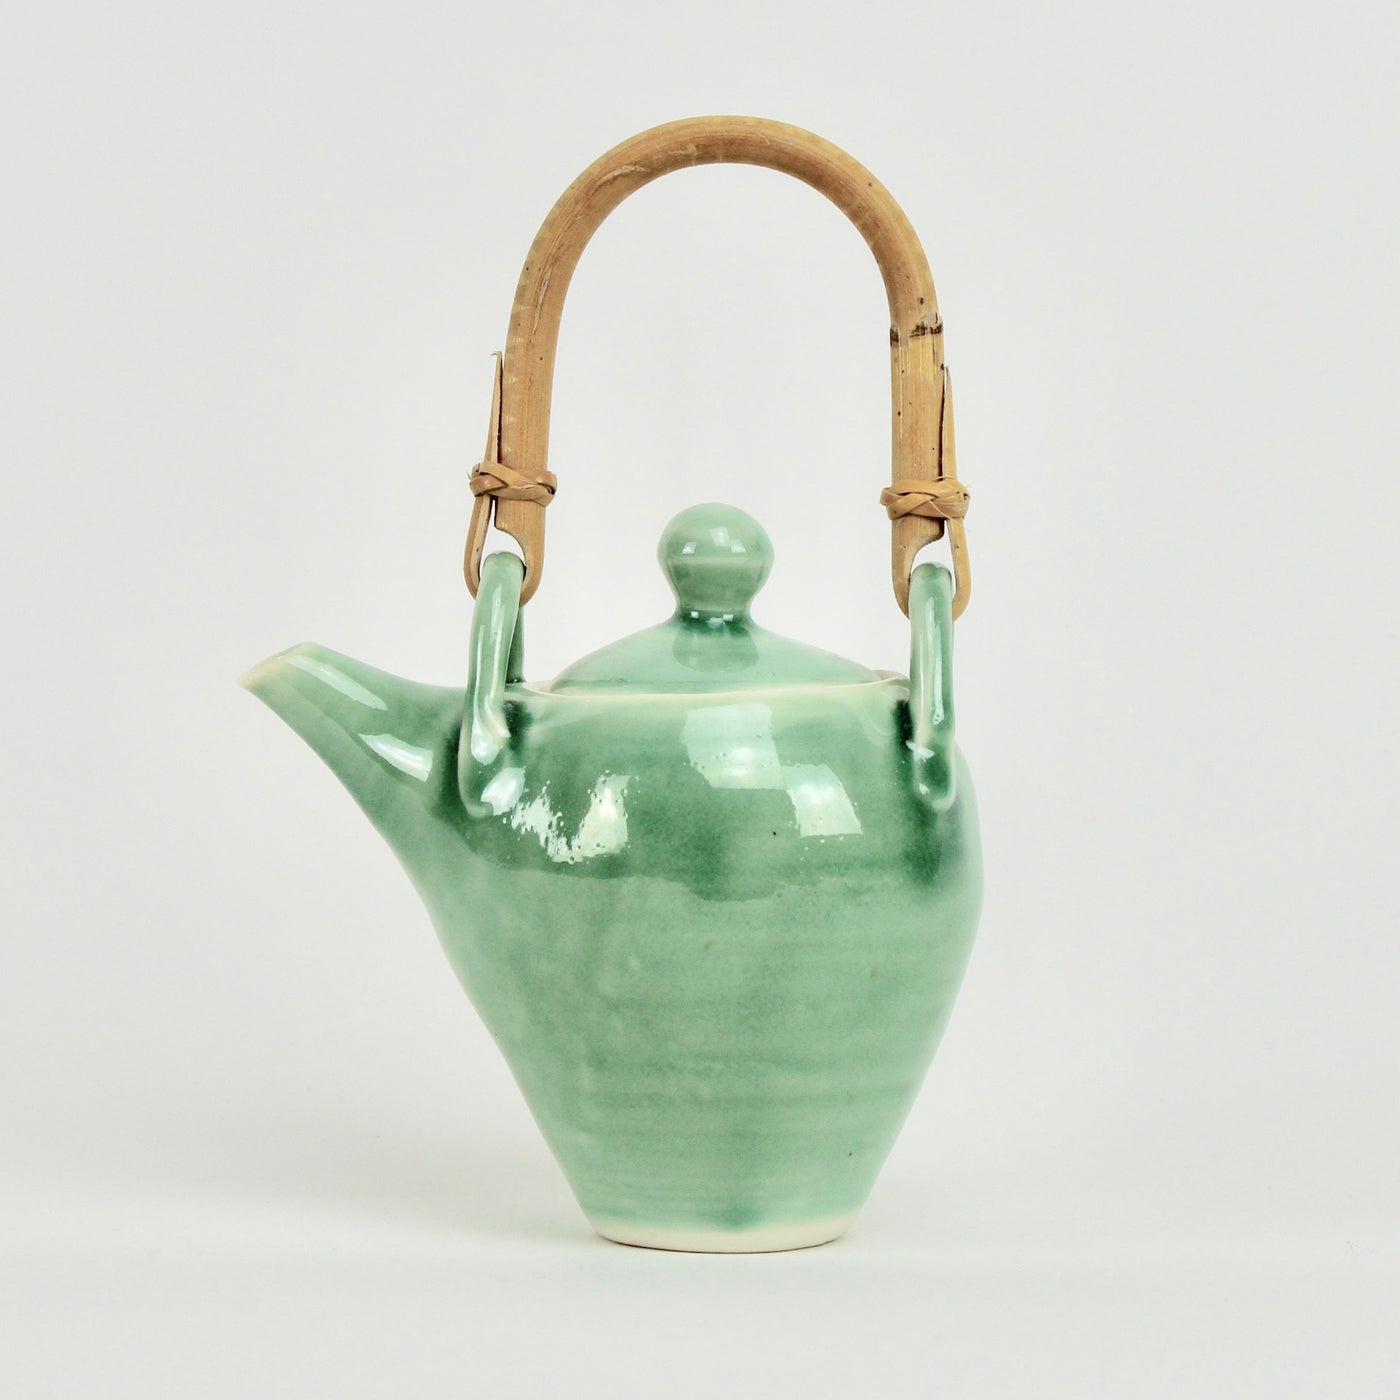 Cane handle teapot